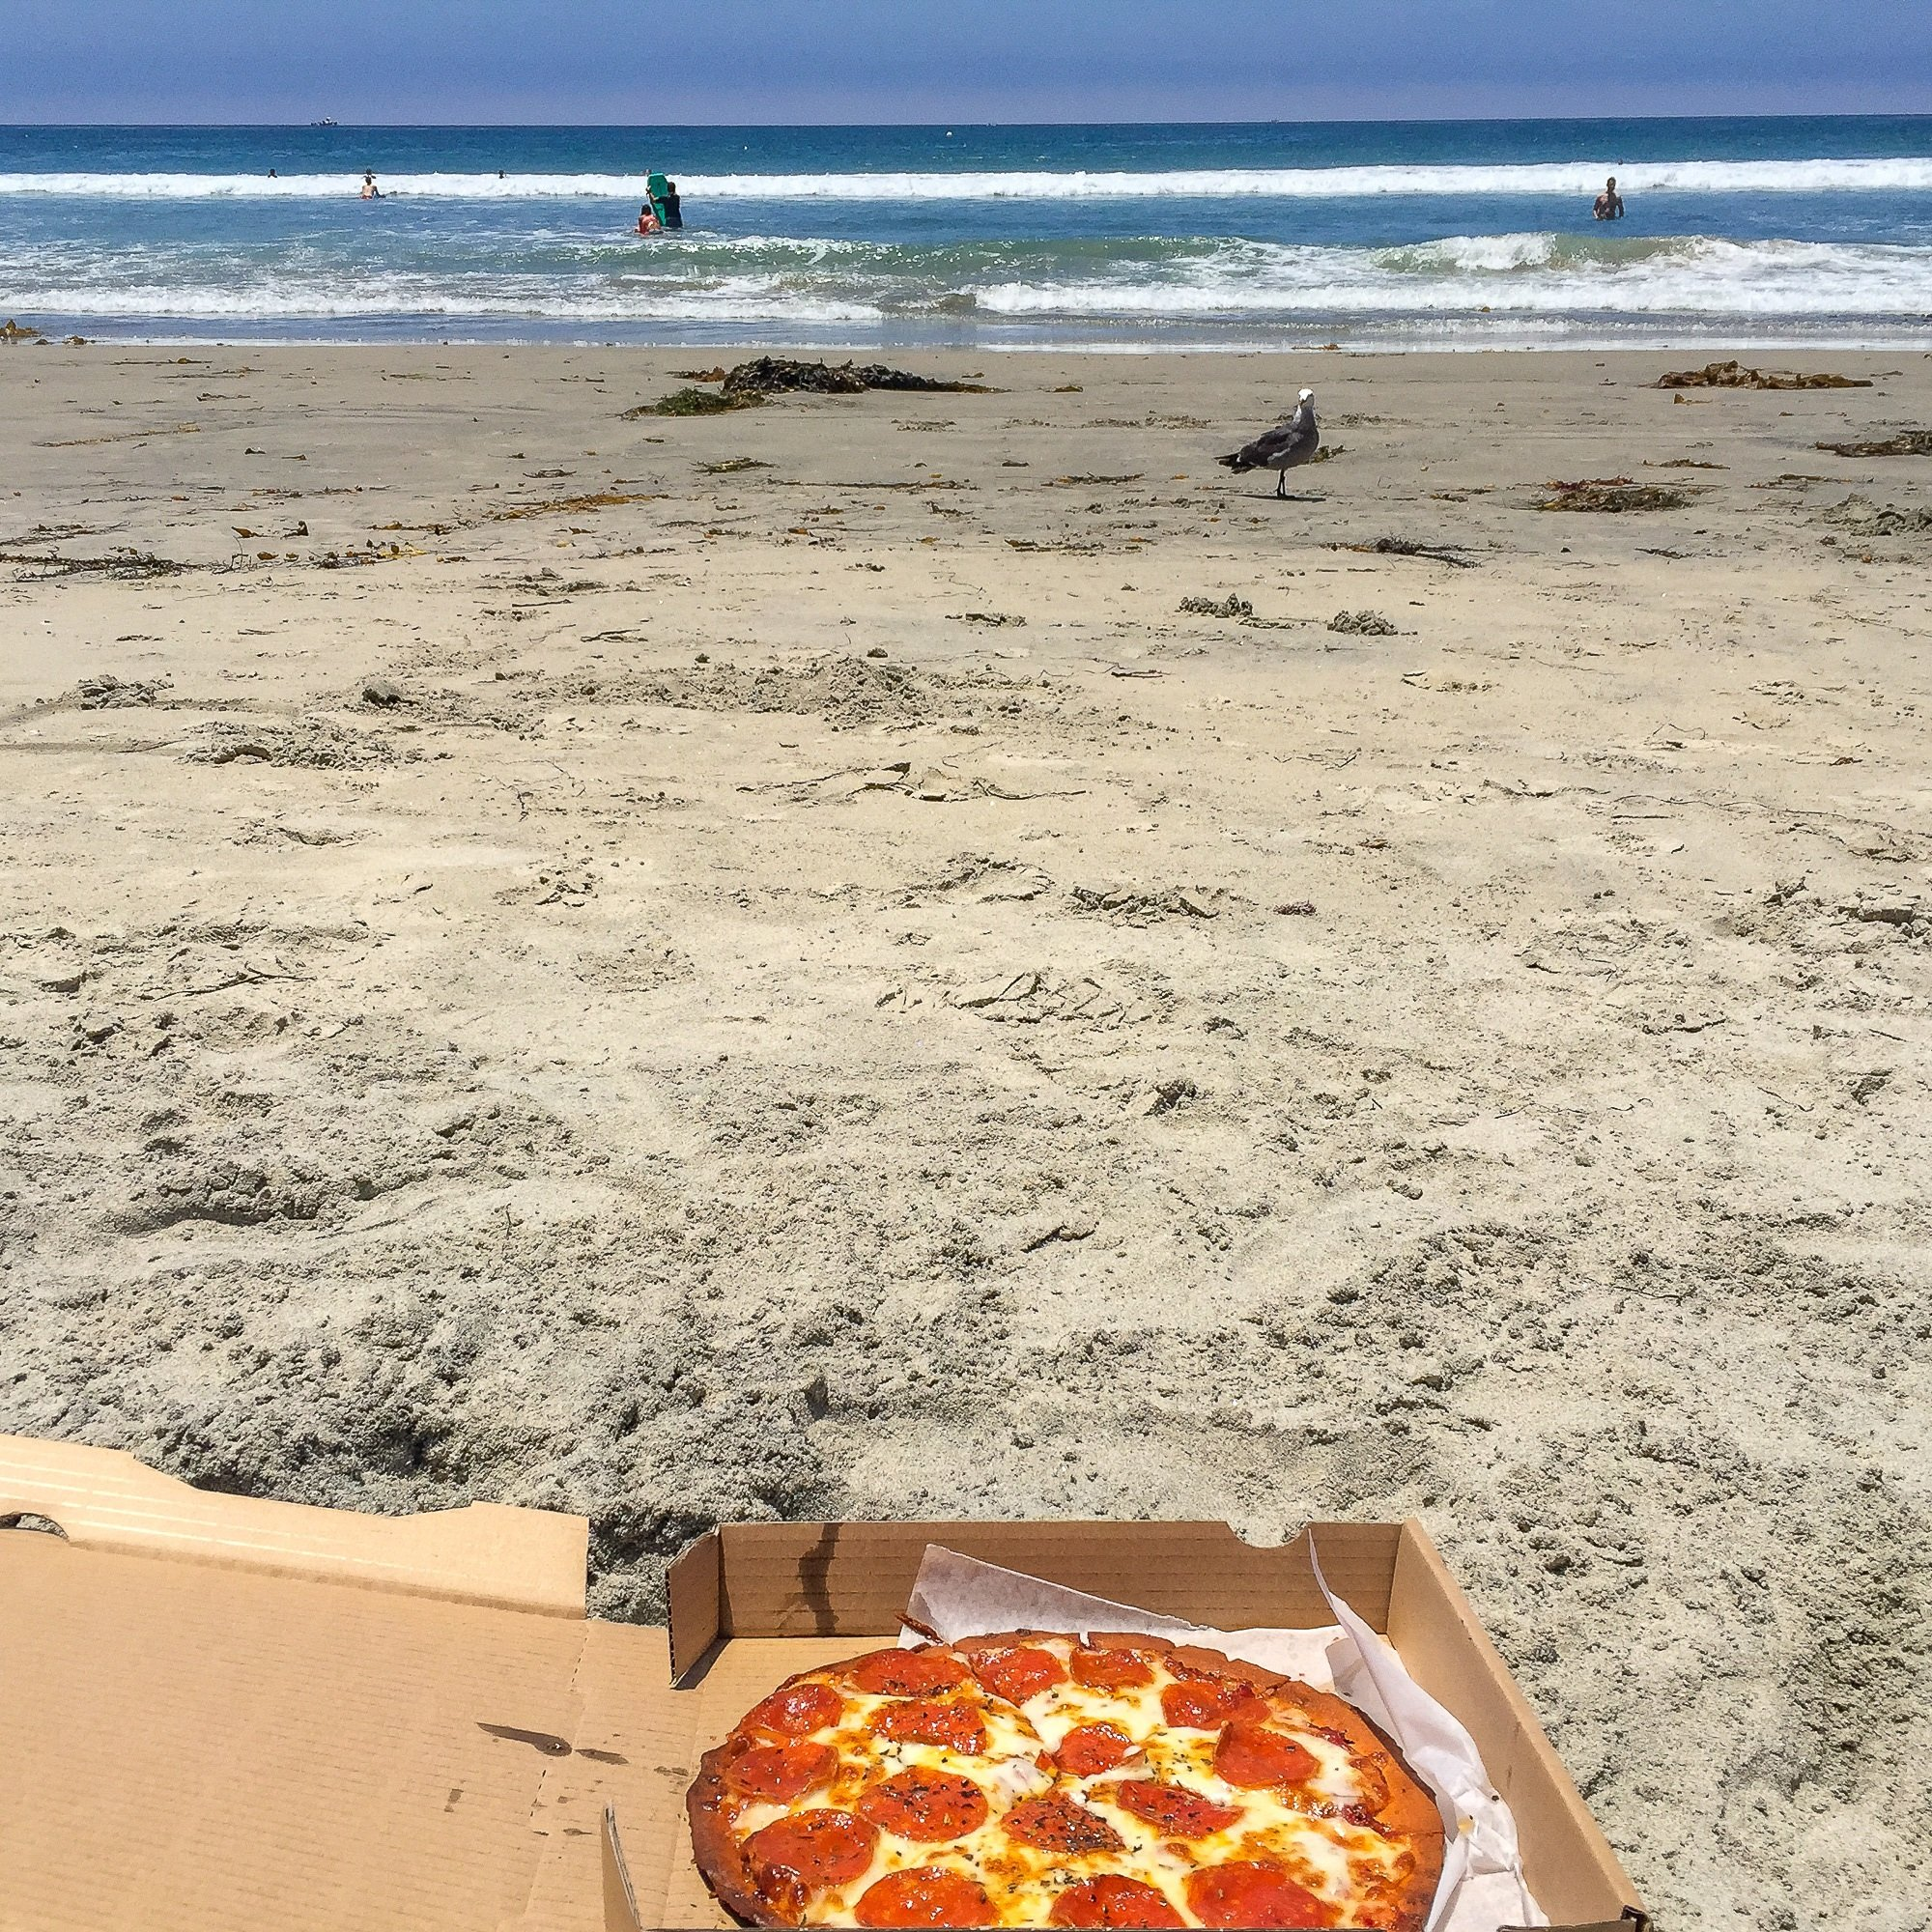 Pizza Port pepperoni pie on the beach